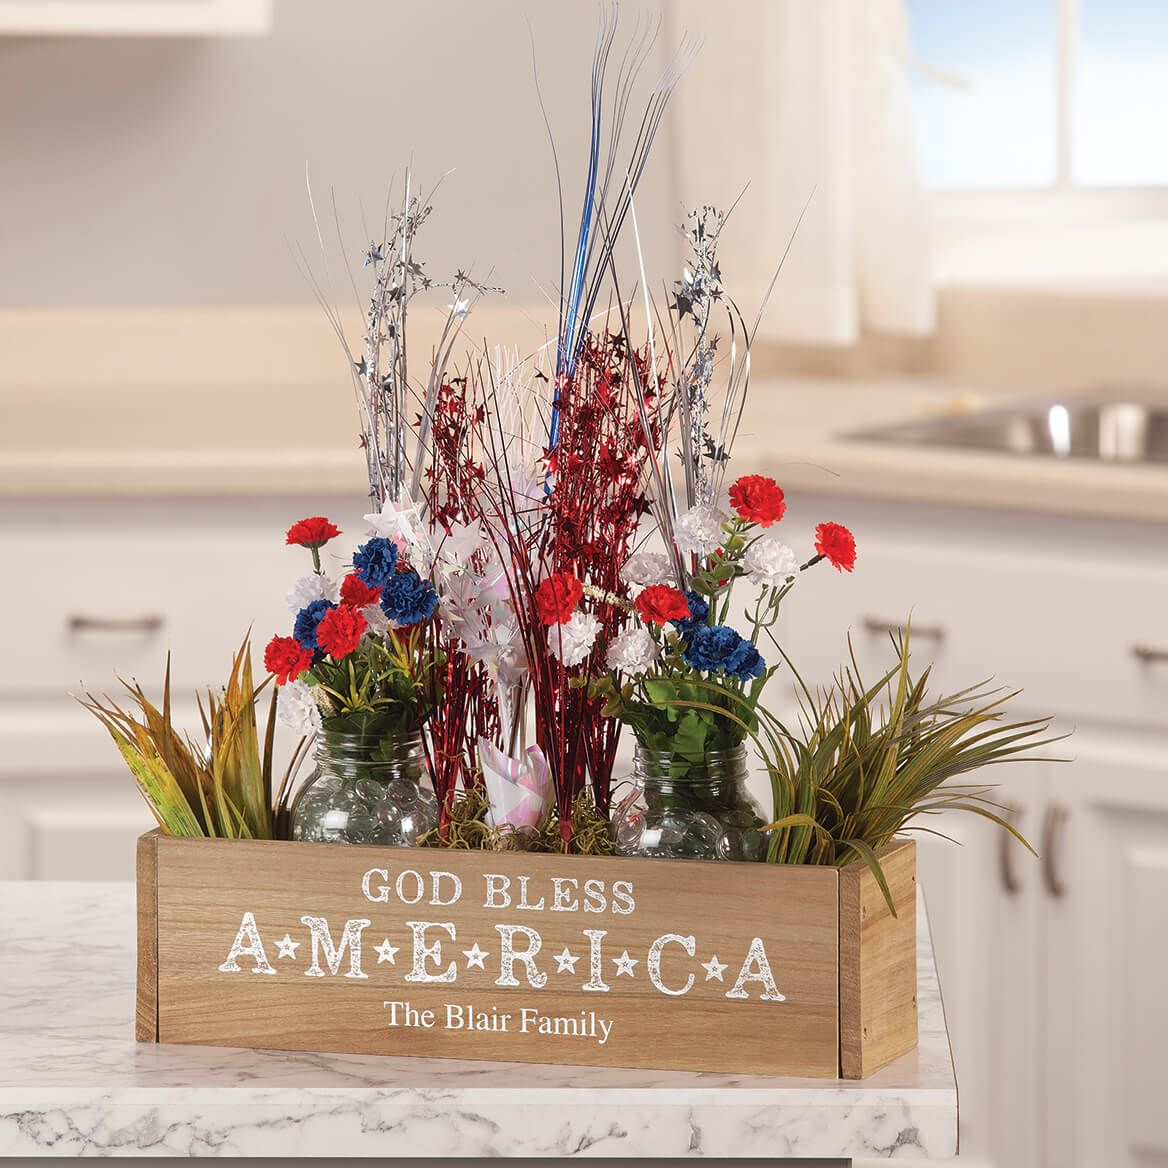 Personalized Wooden Planter Box, God Bless America-369259